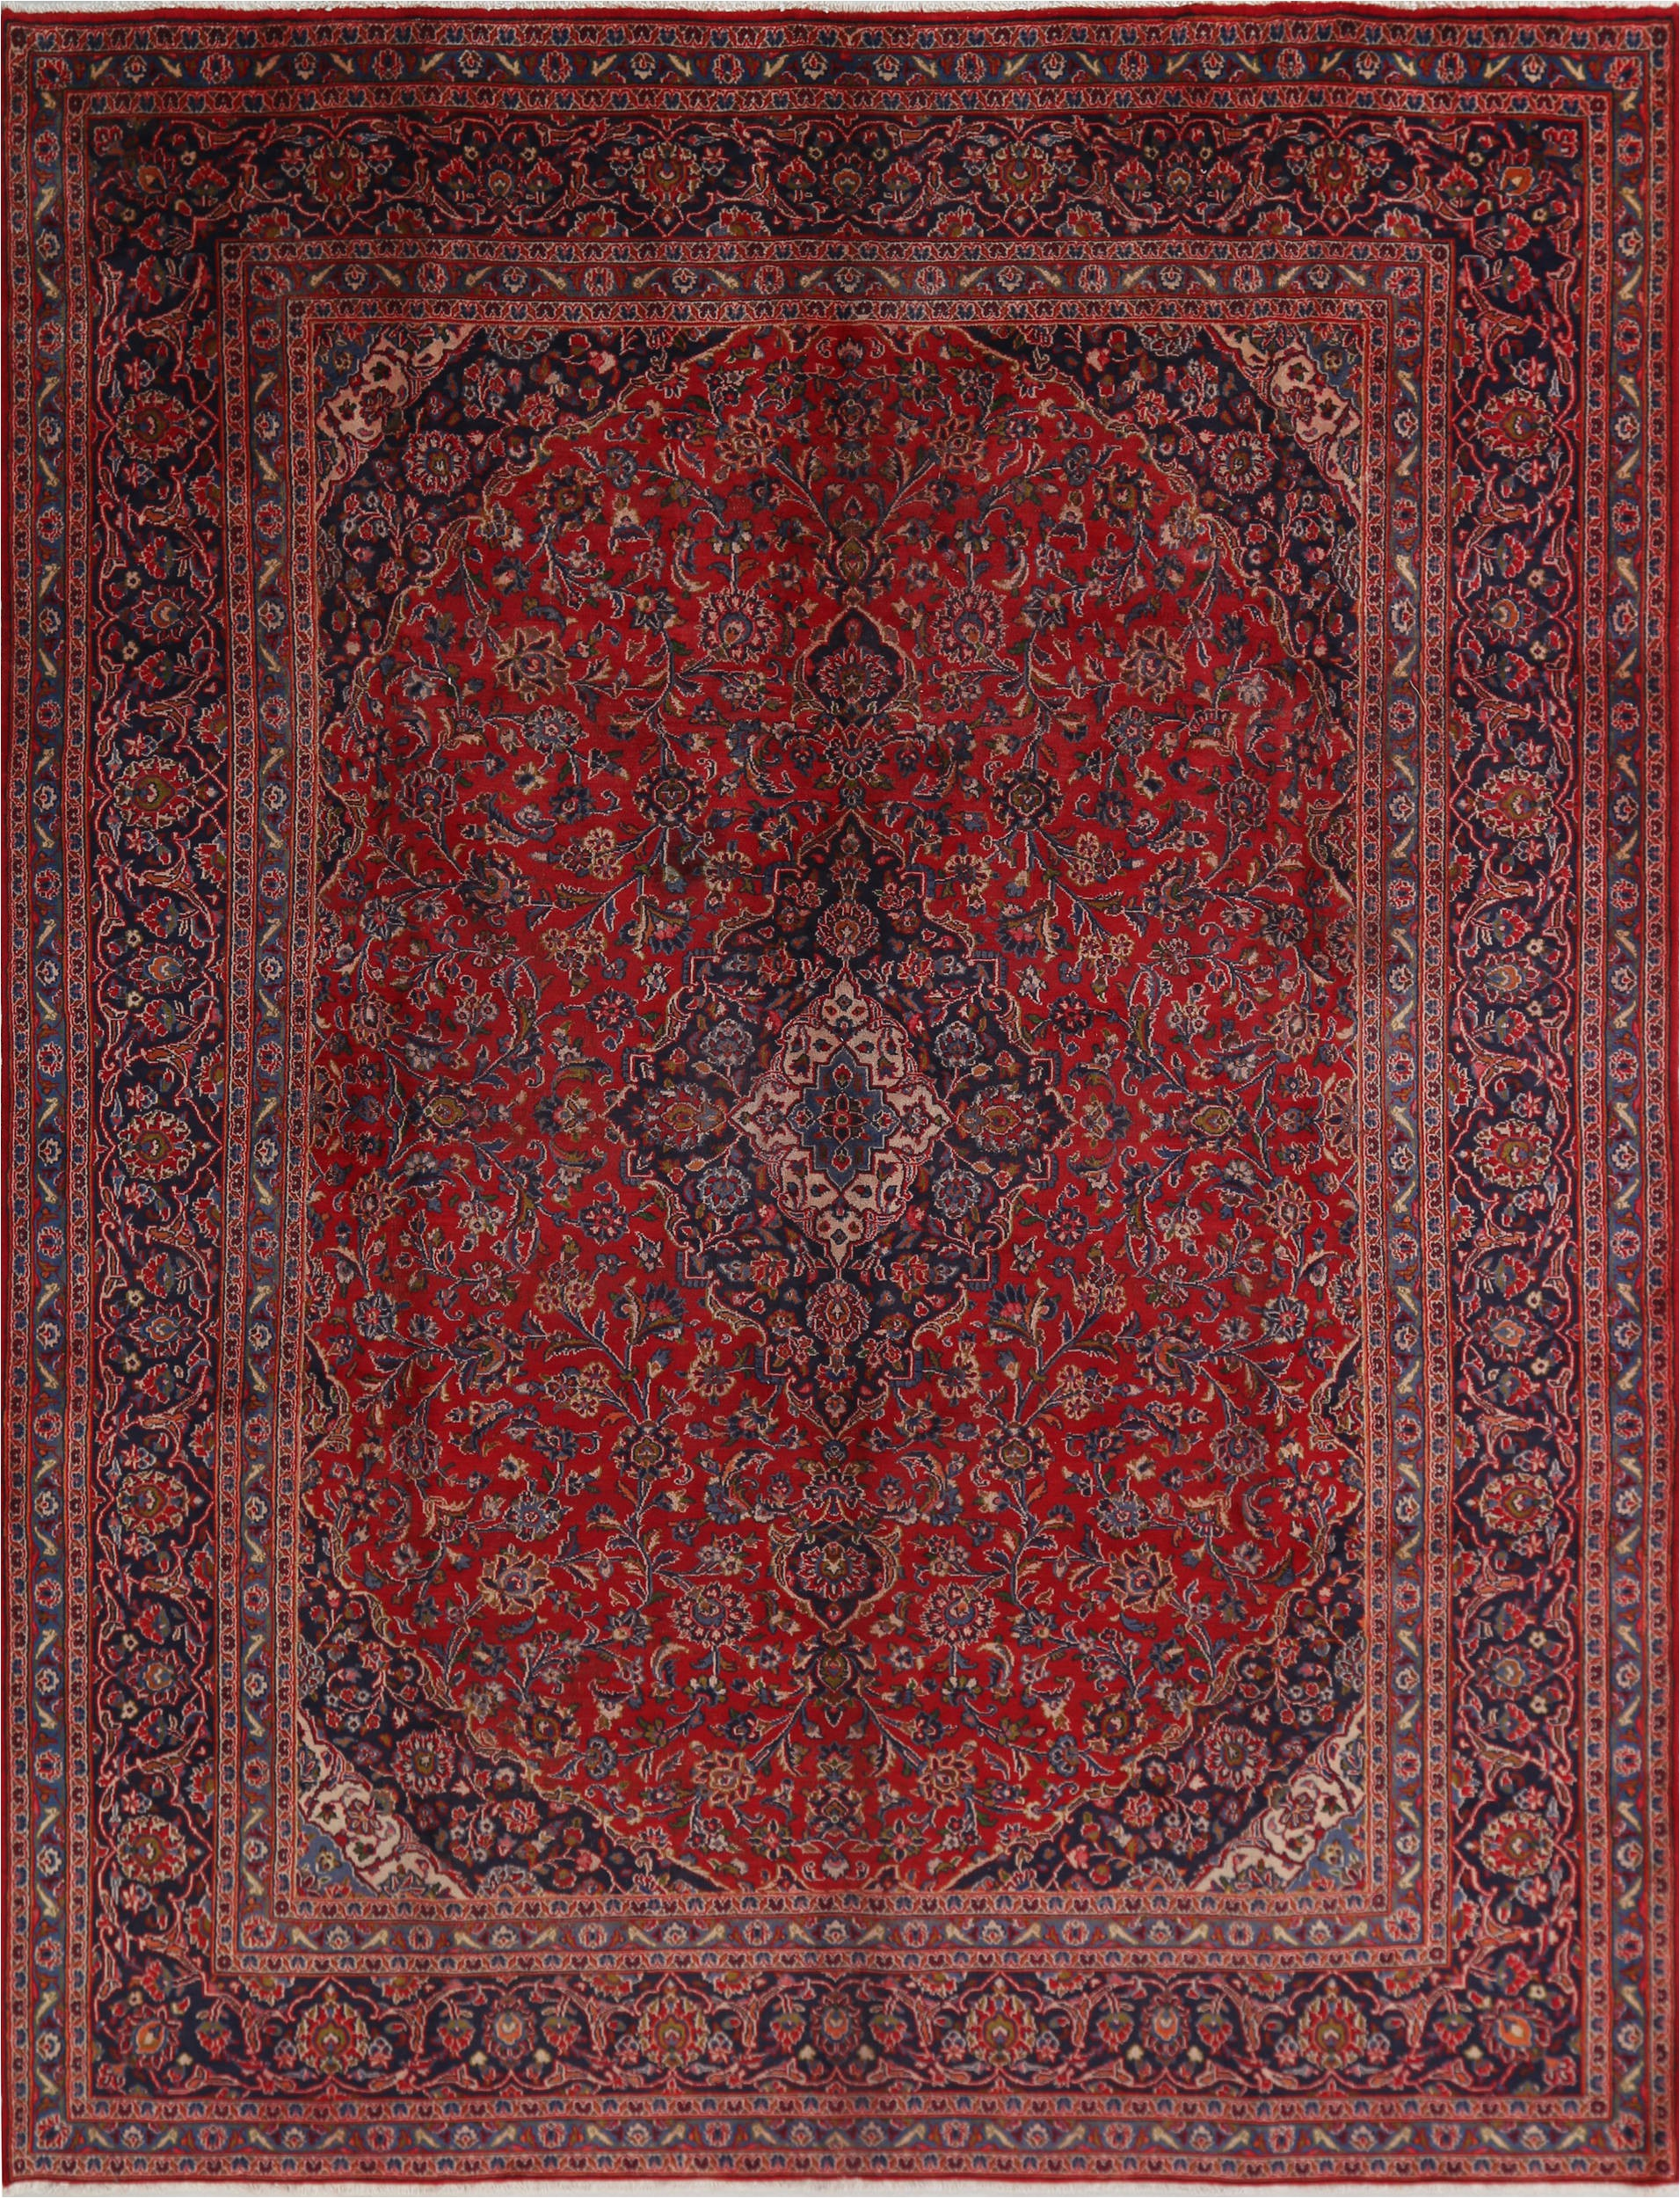 9x12 ft persian hand knotted red wool sku